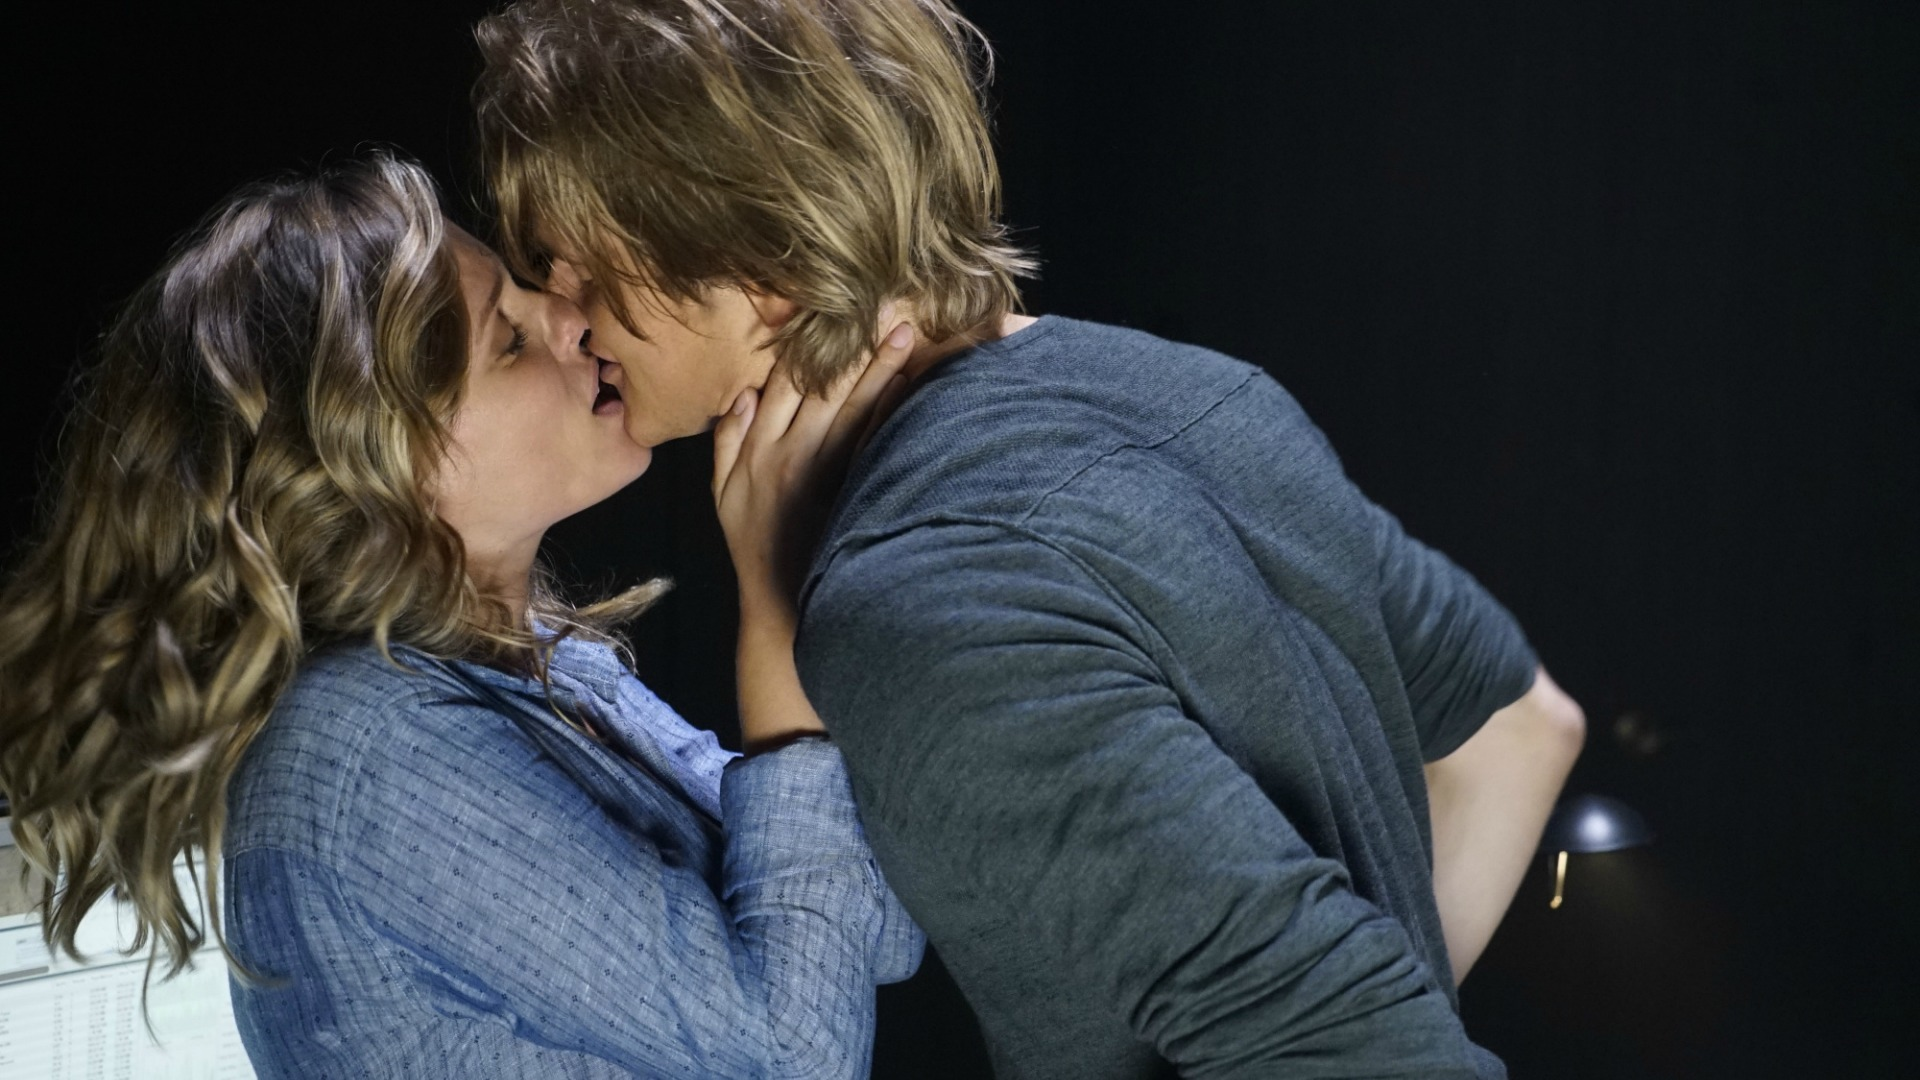 MacGyver and Nikki share a steamy kiss.